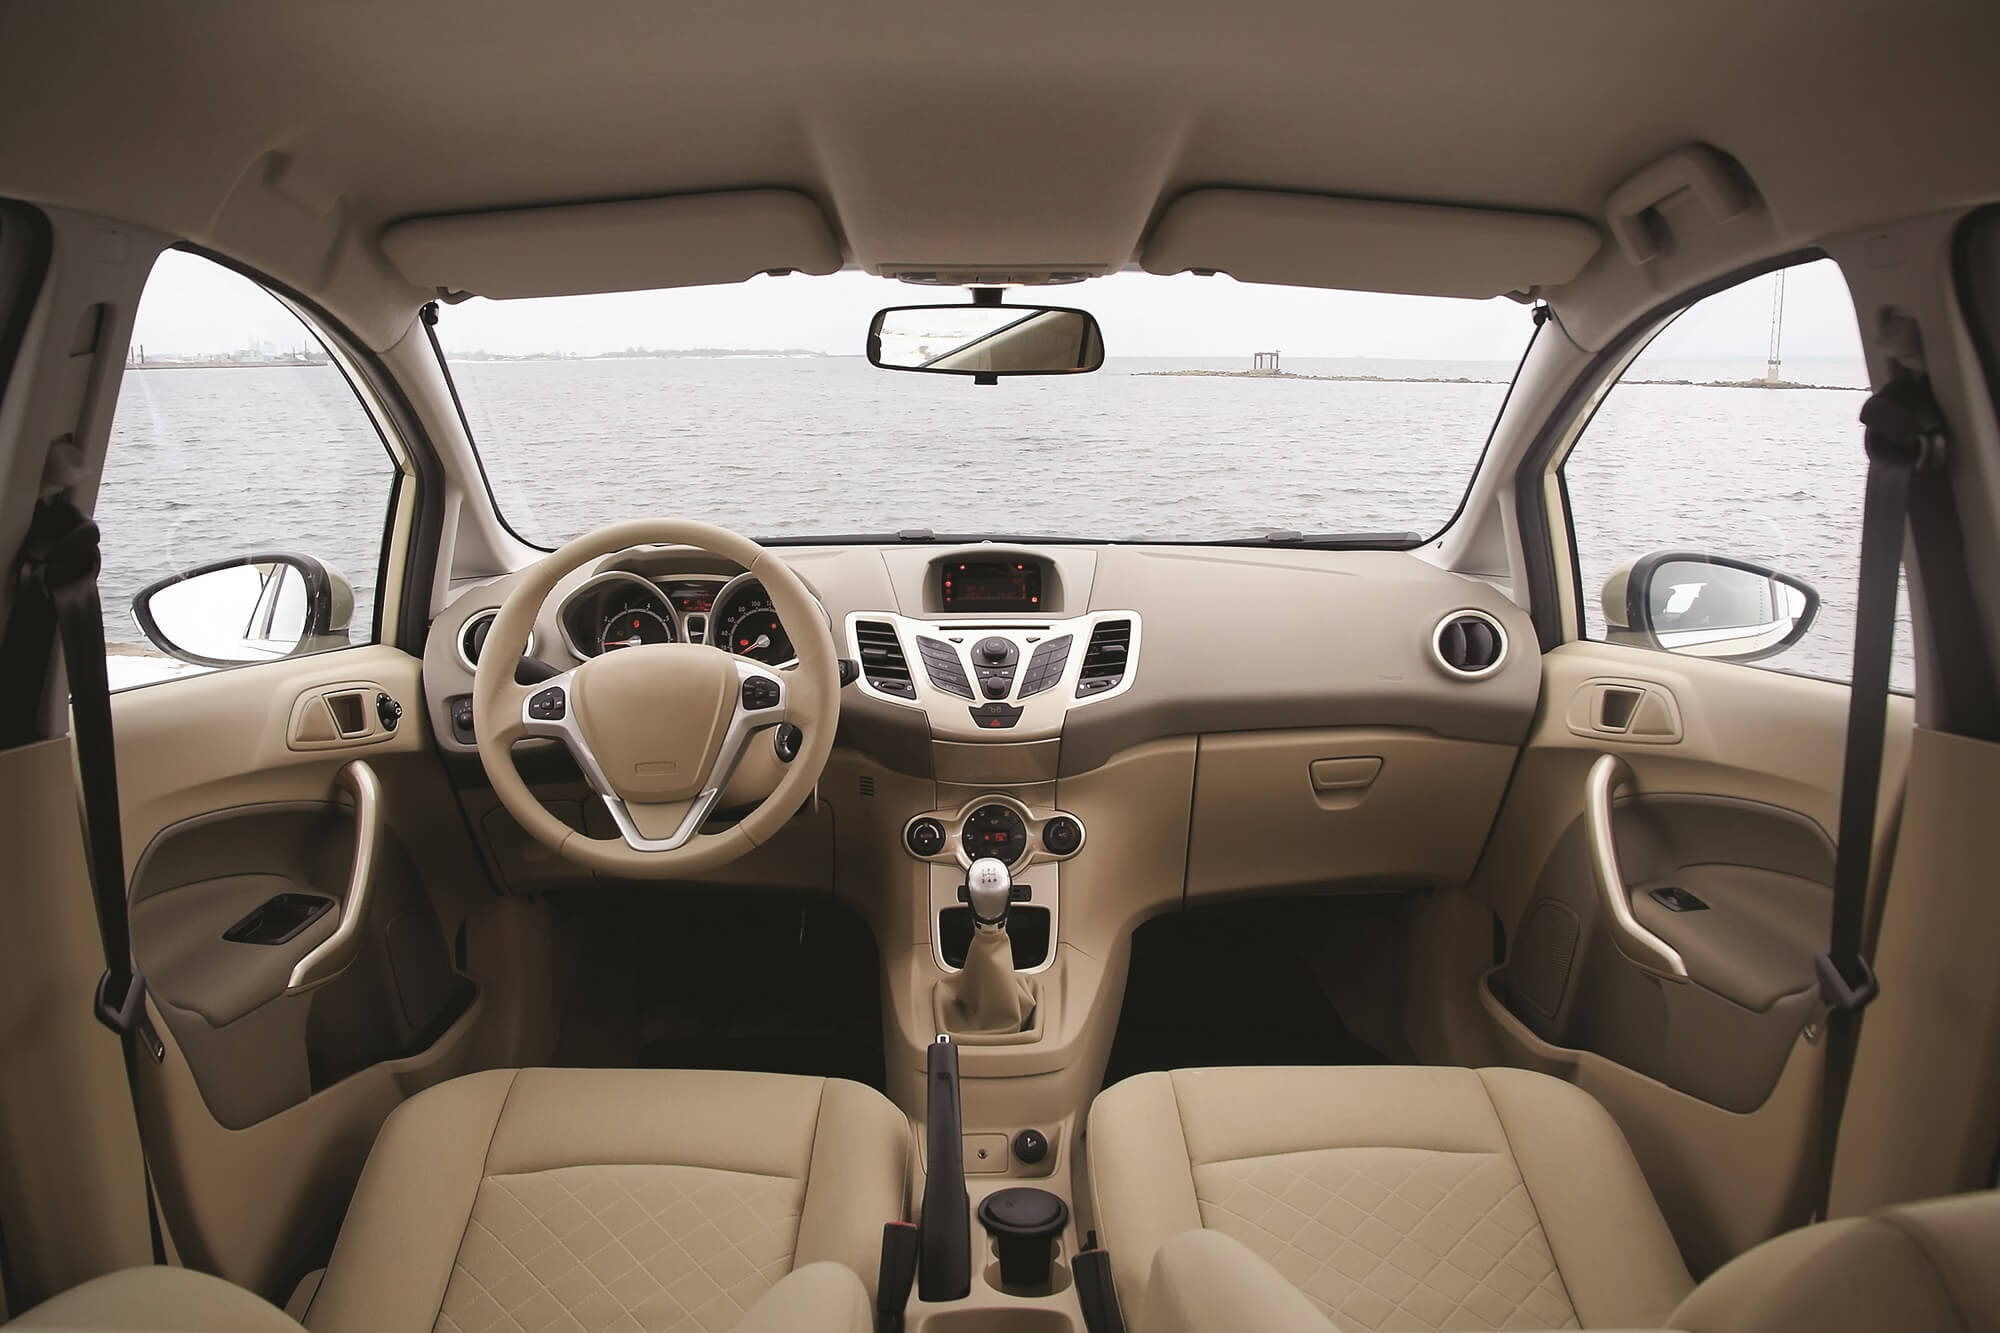 Car Interior-Tan